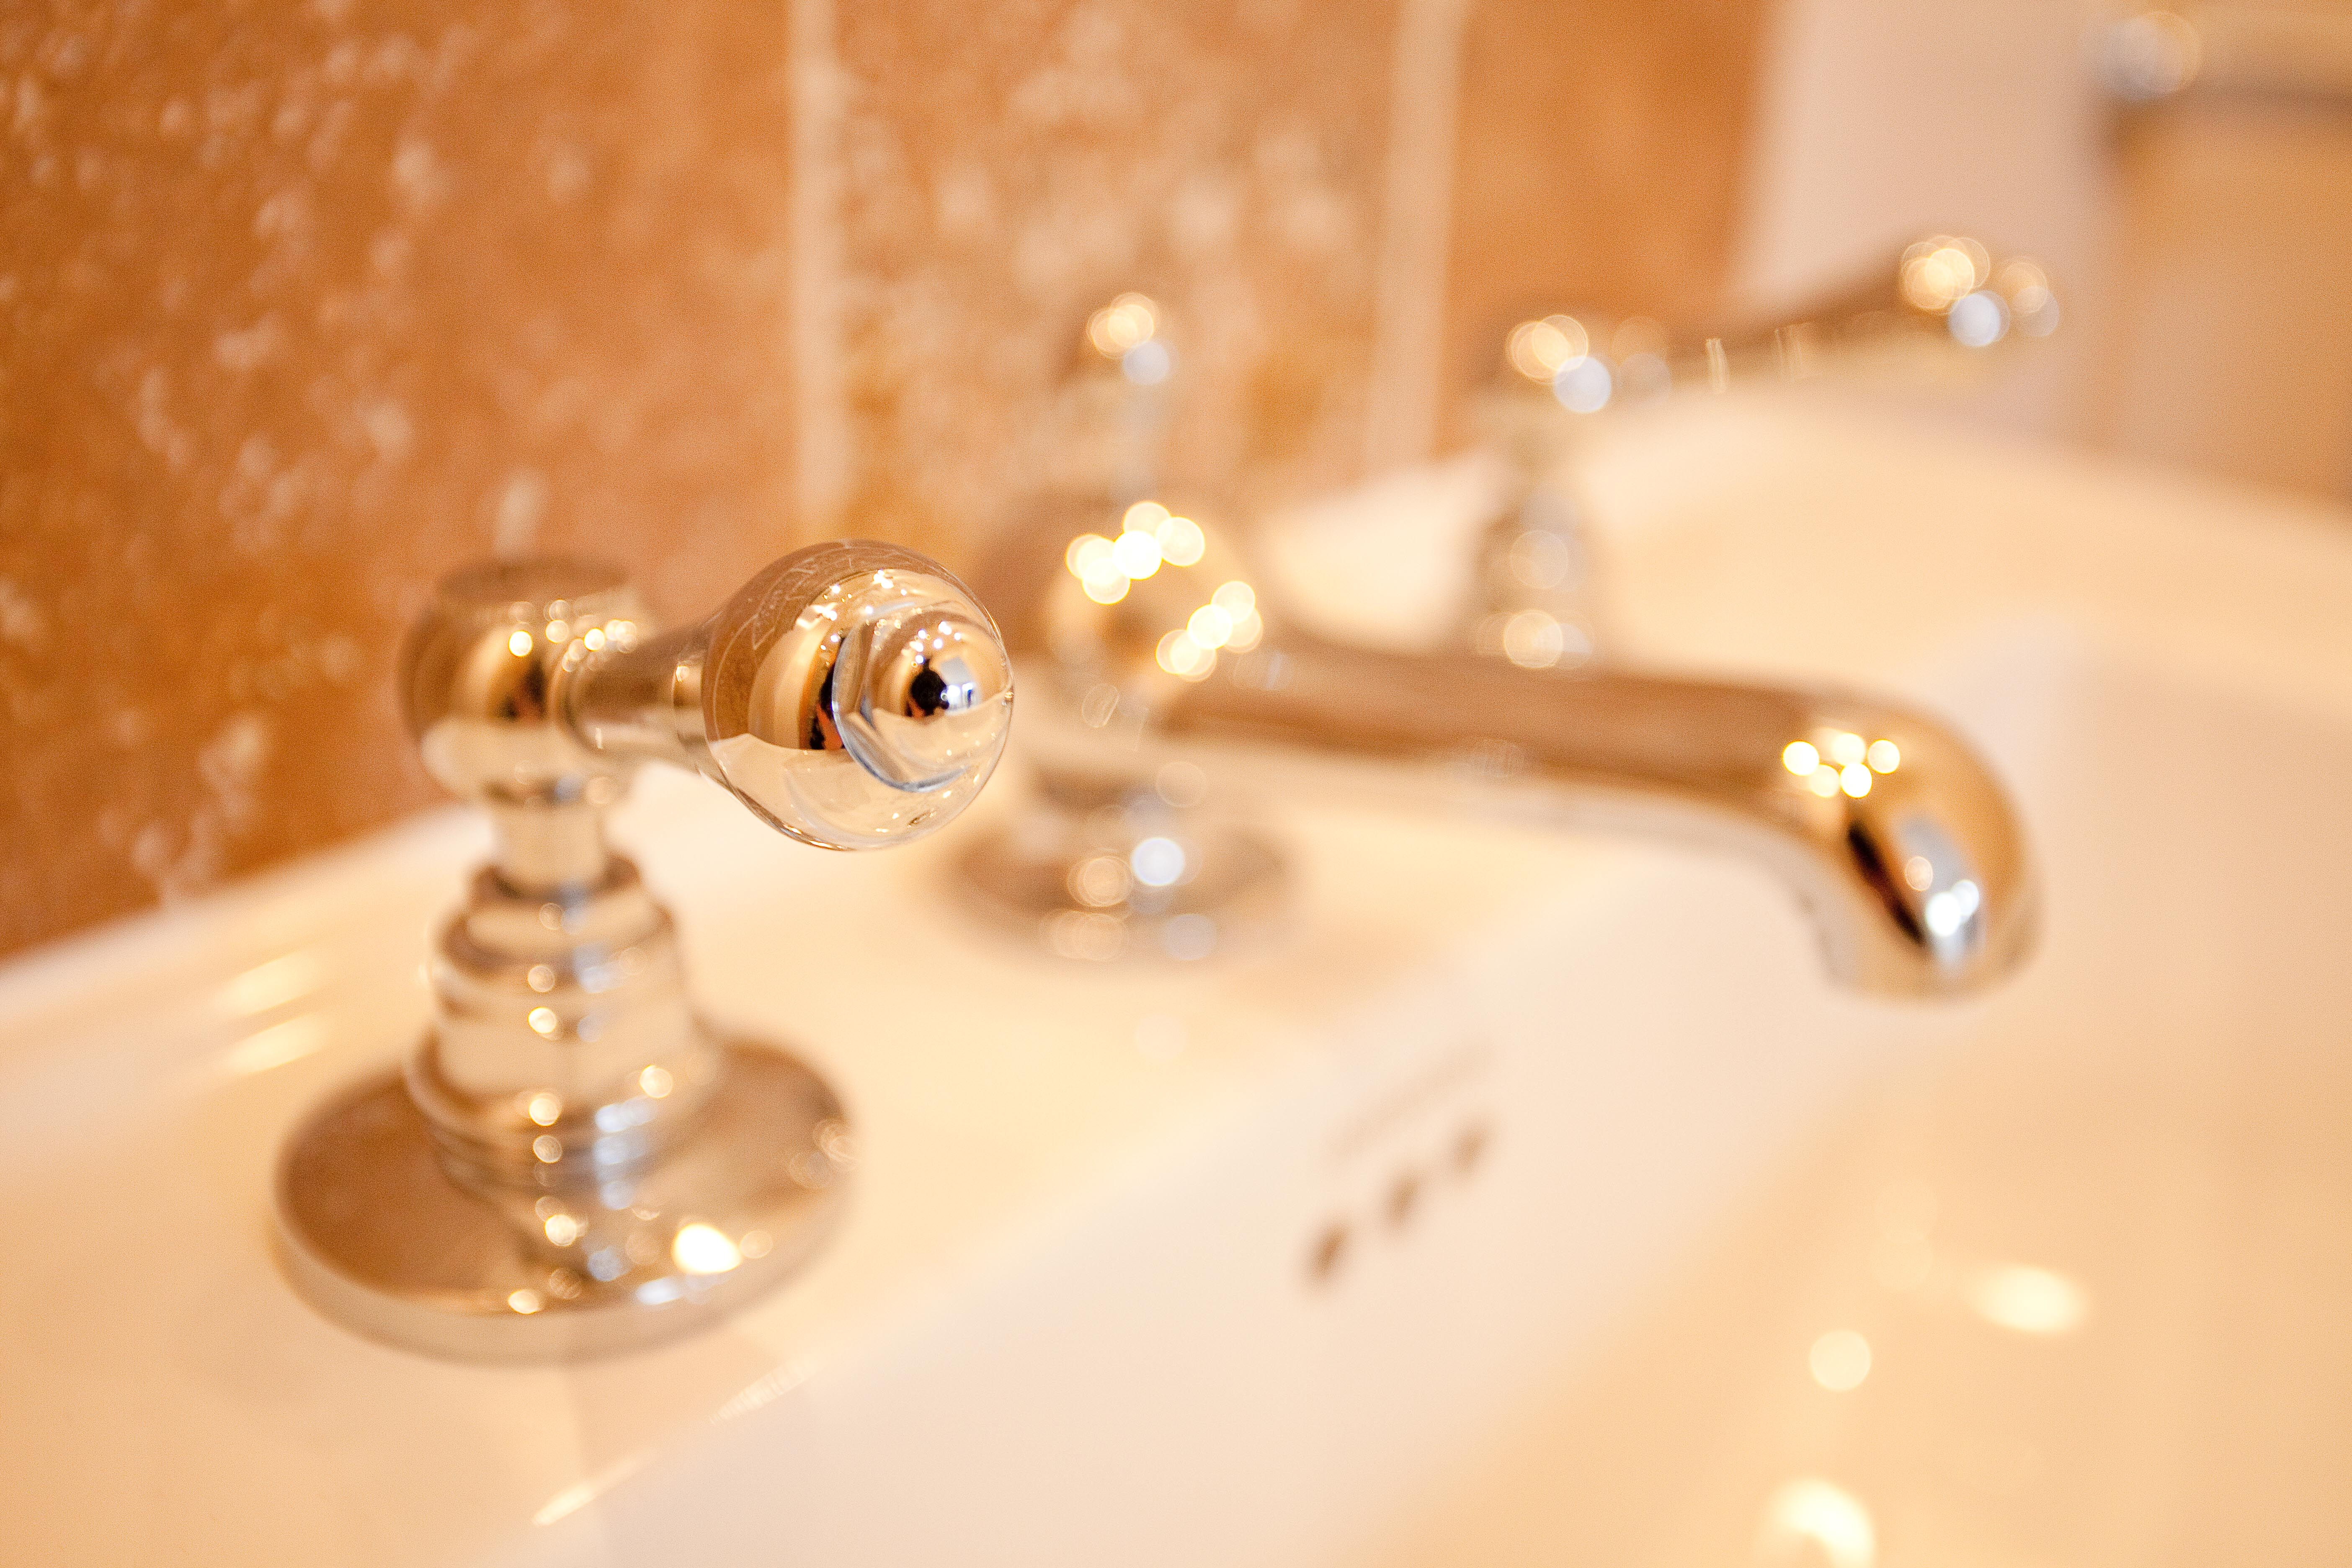 Traditional bathroom design sink and taps